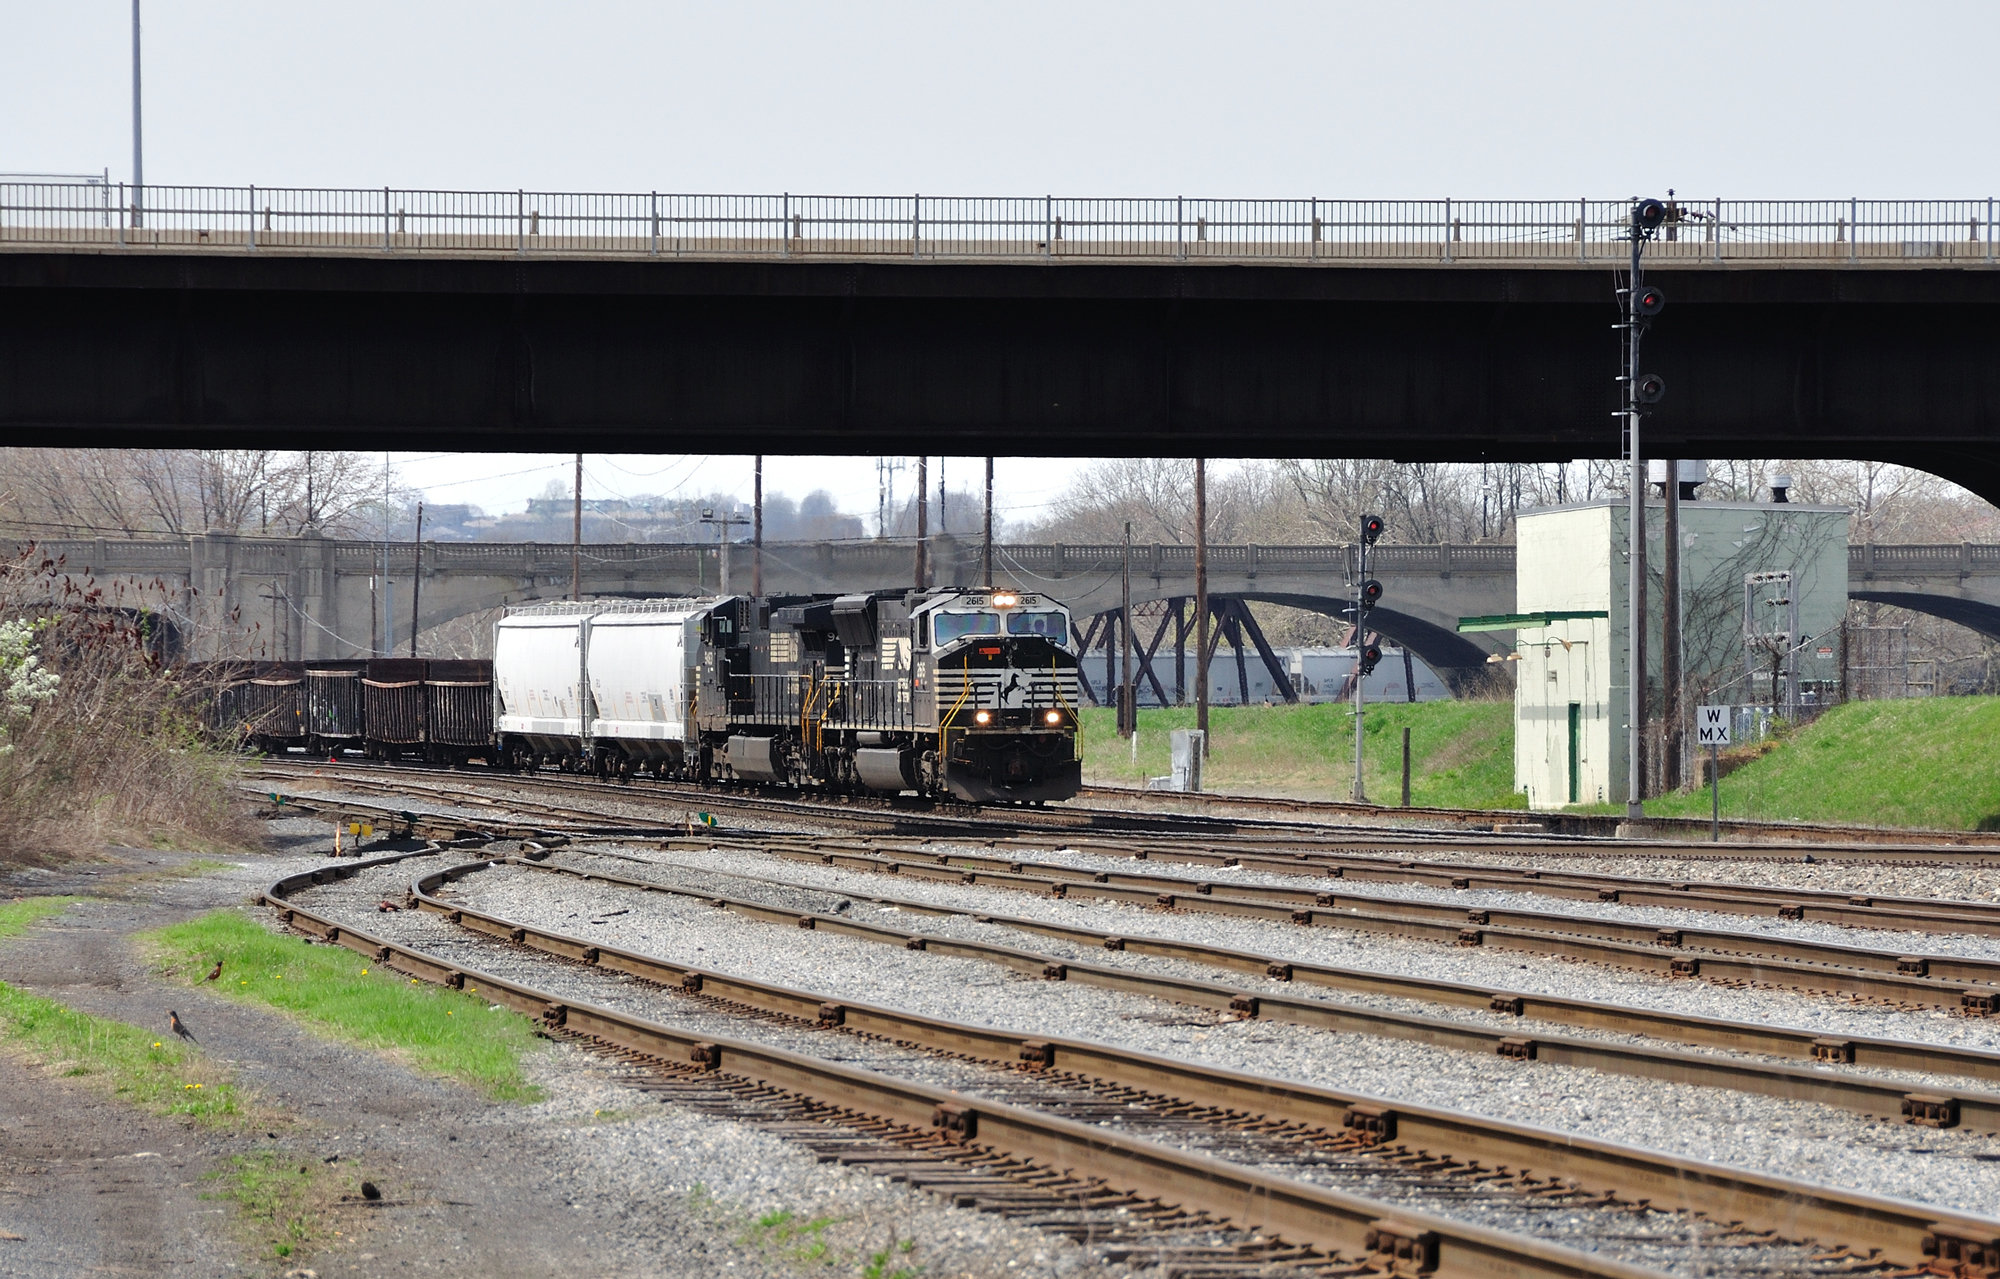 Norfolk Southern SD70M 2615 is joined by NS C40-9W 9453 as power for todays train 18G